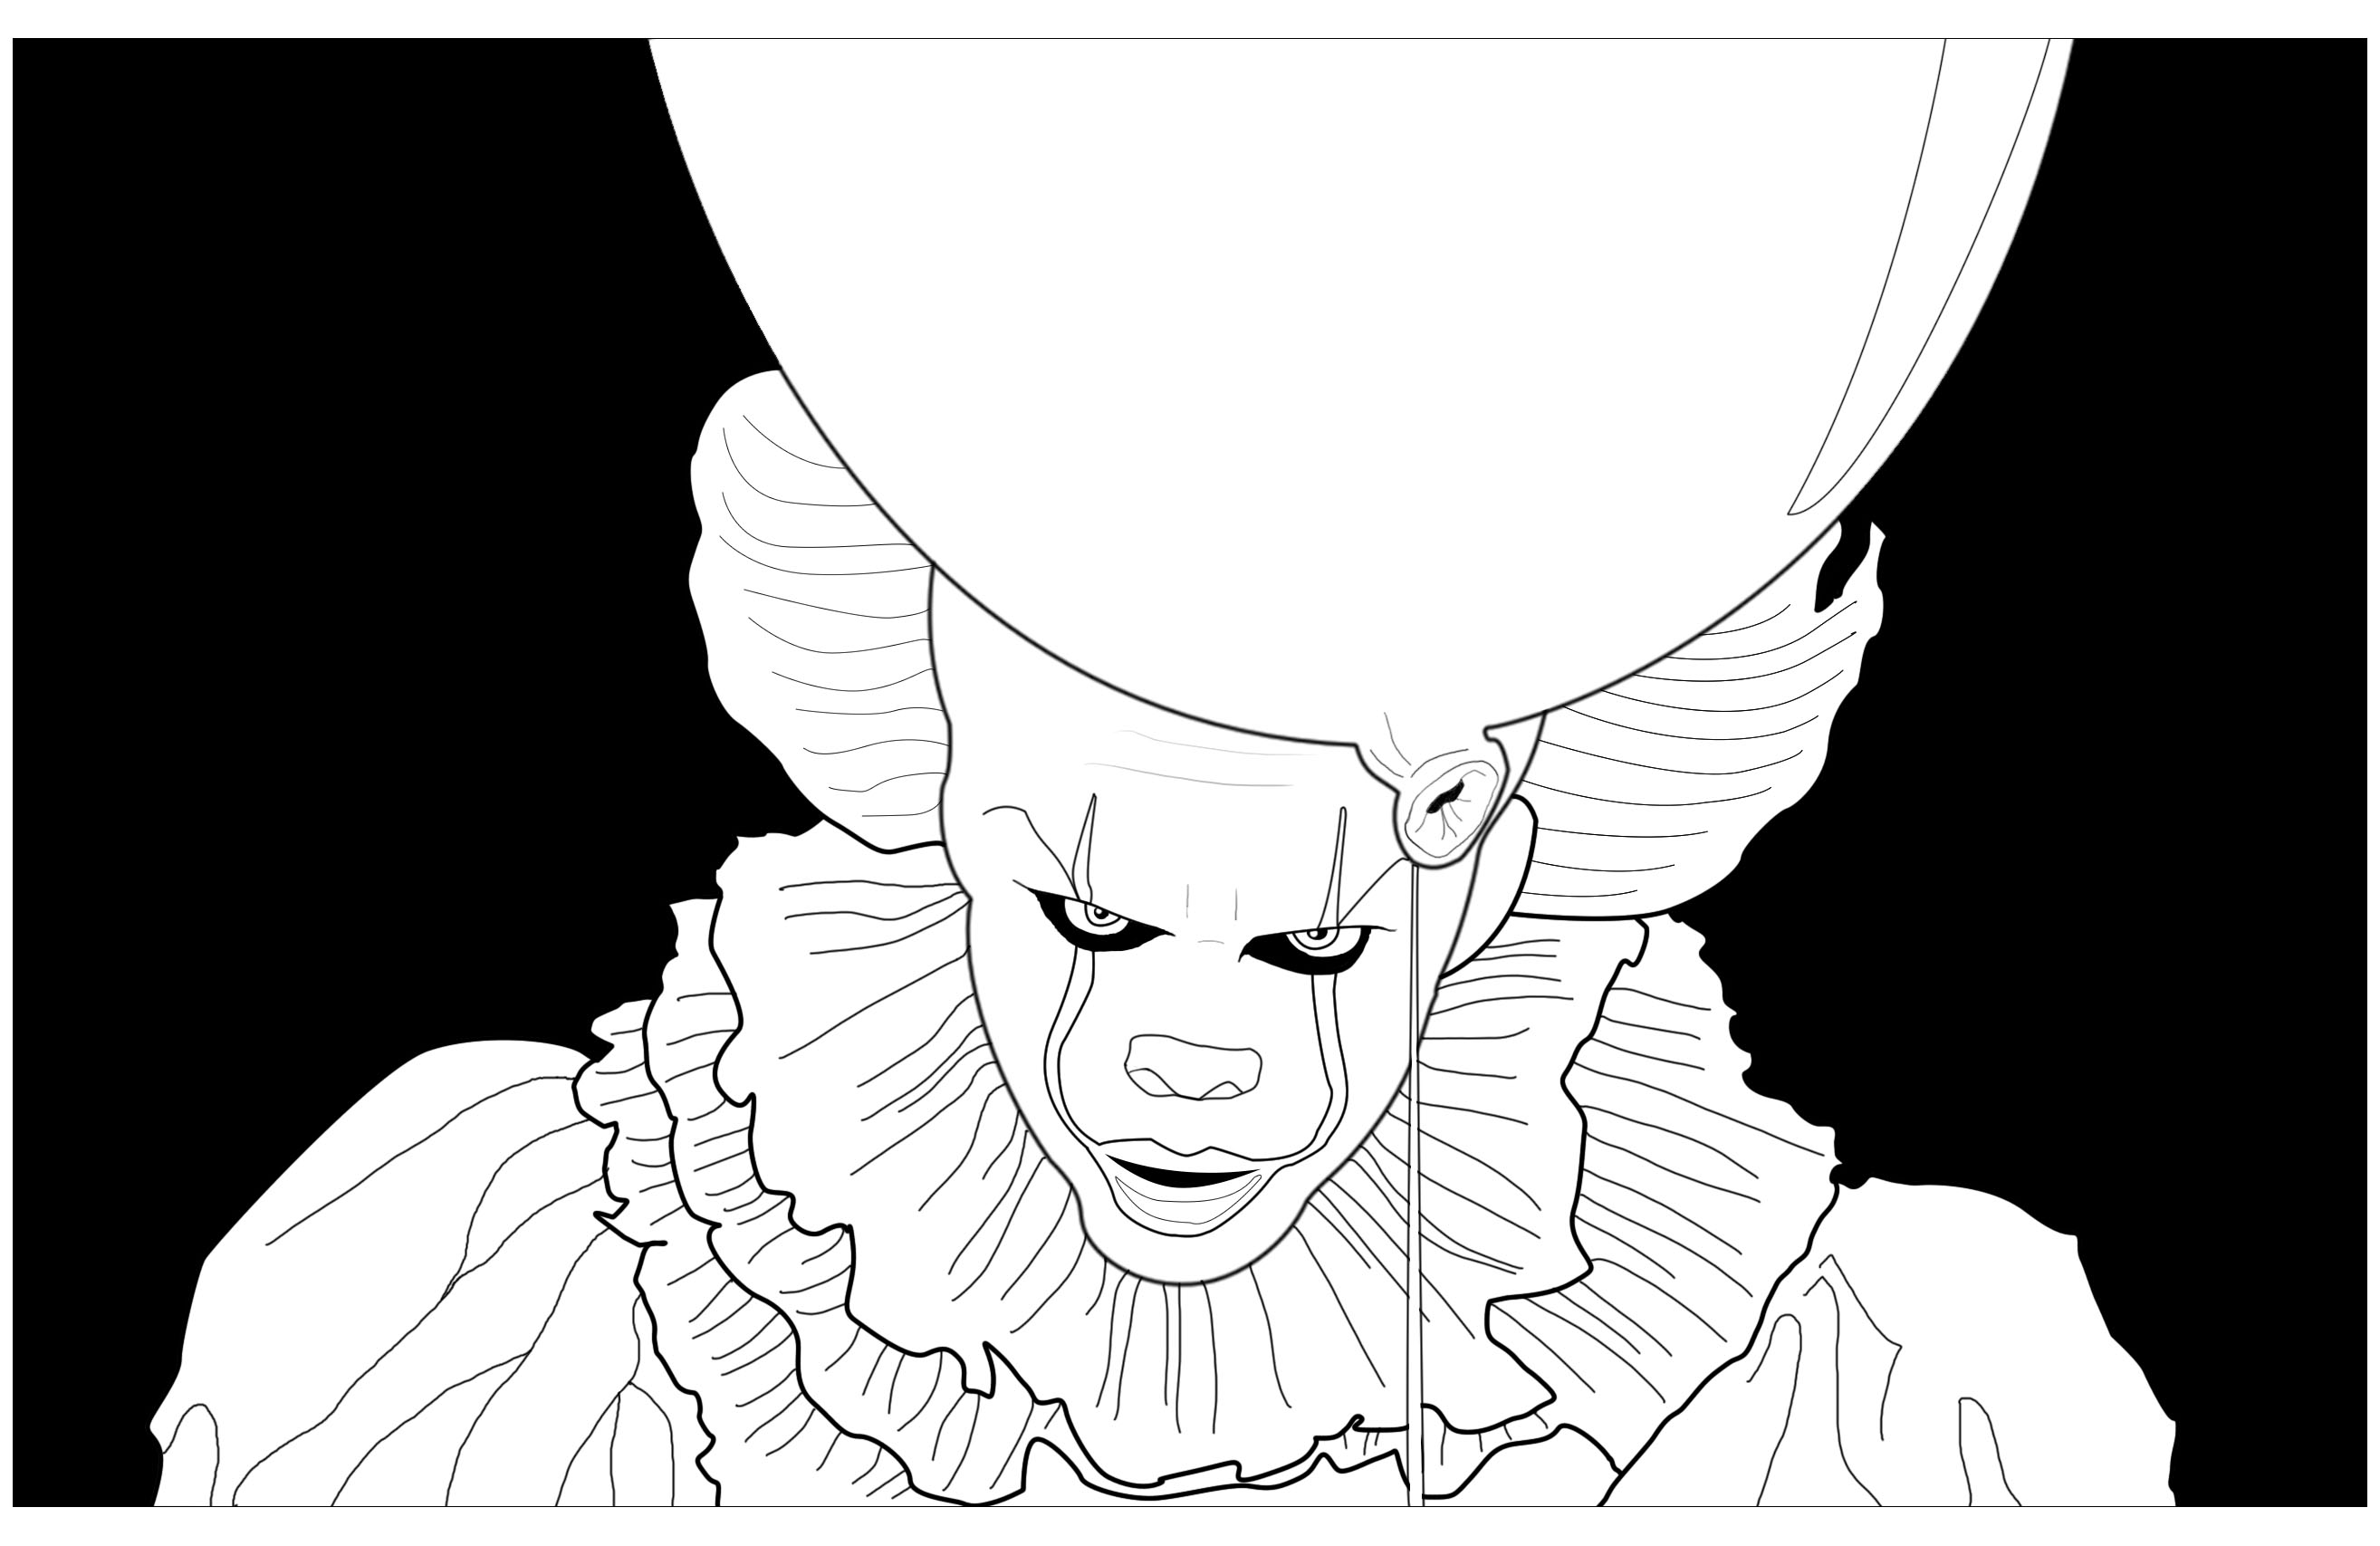 Clown - Coloring Pages for Adults